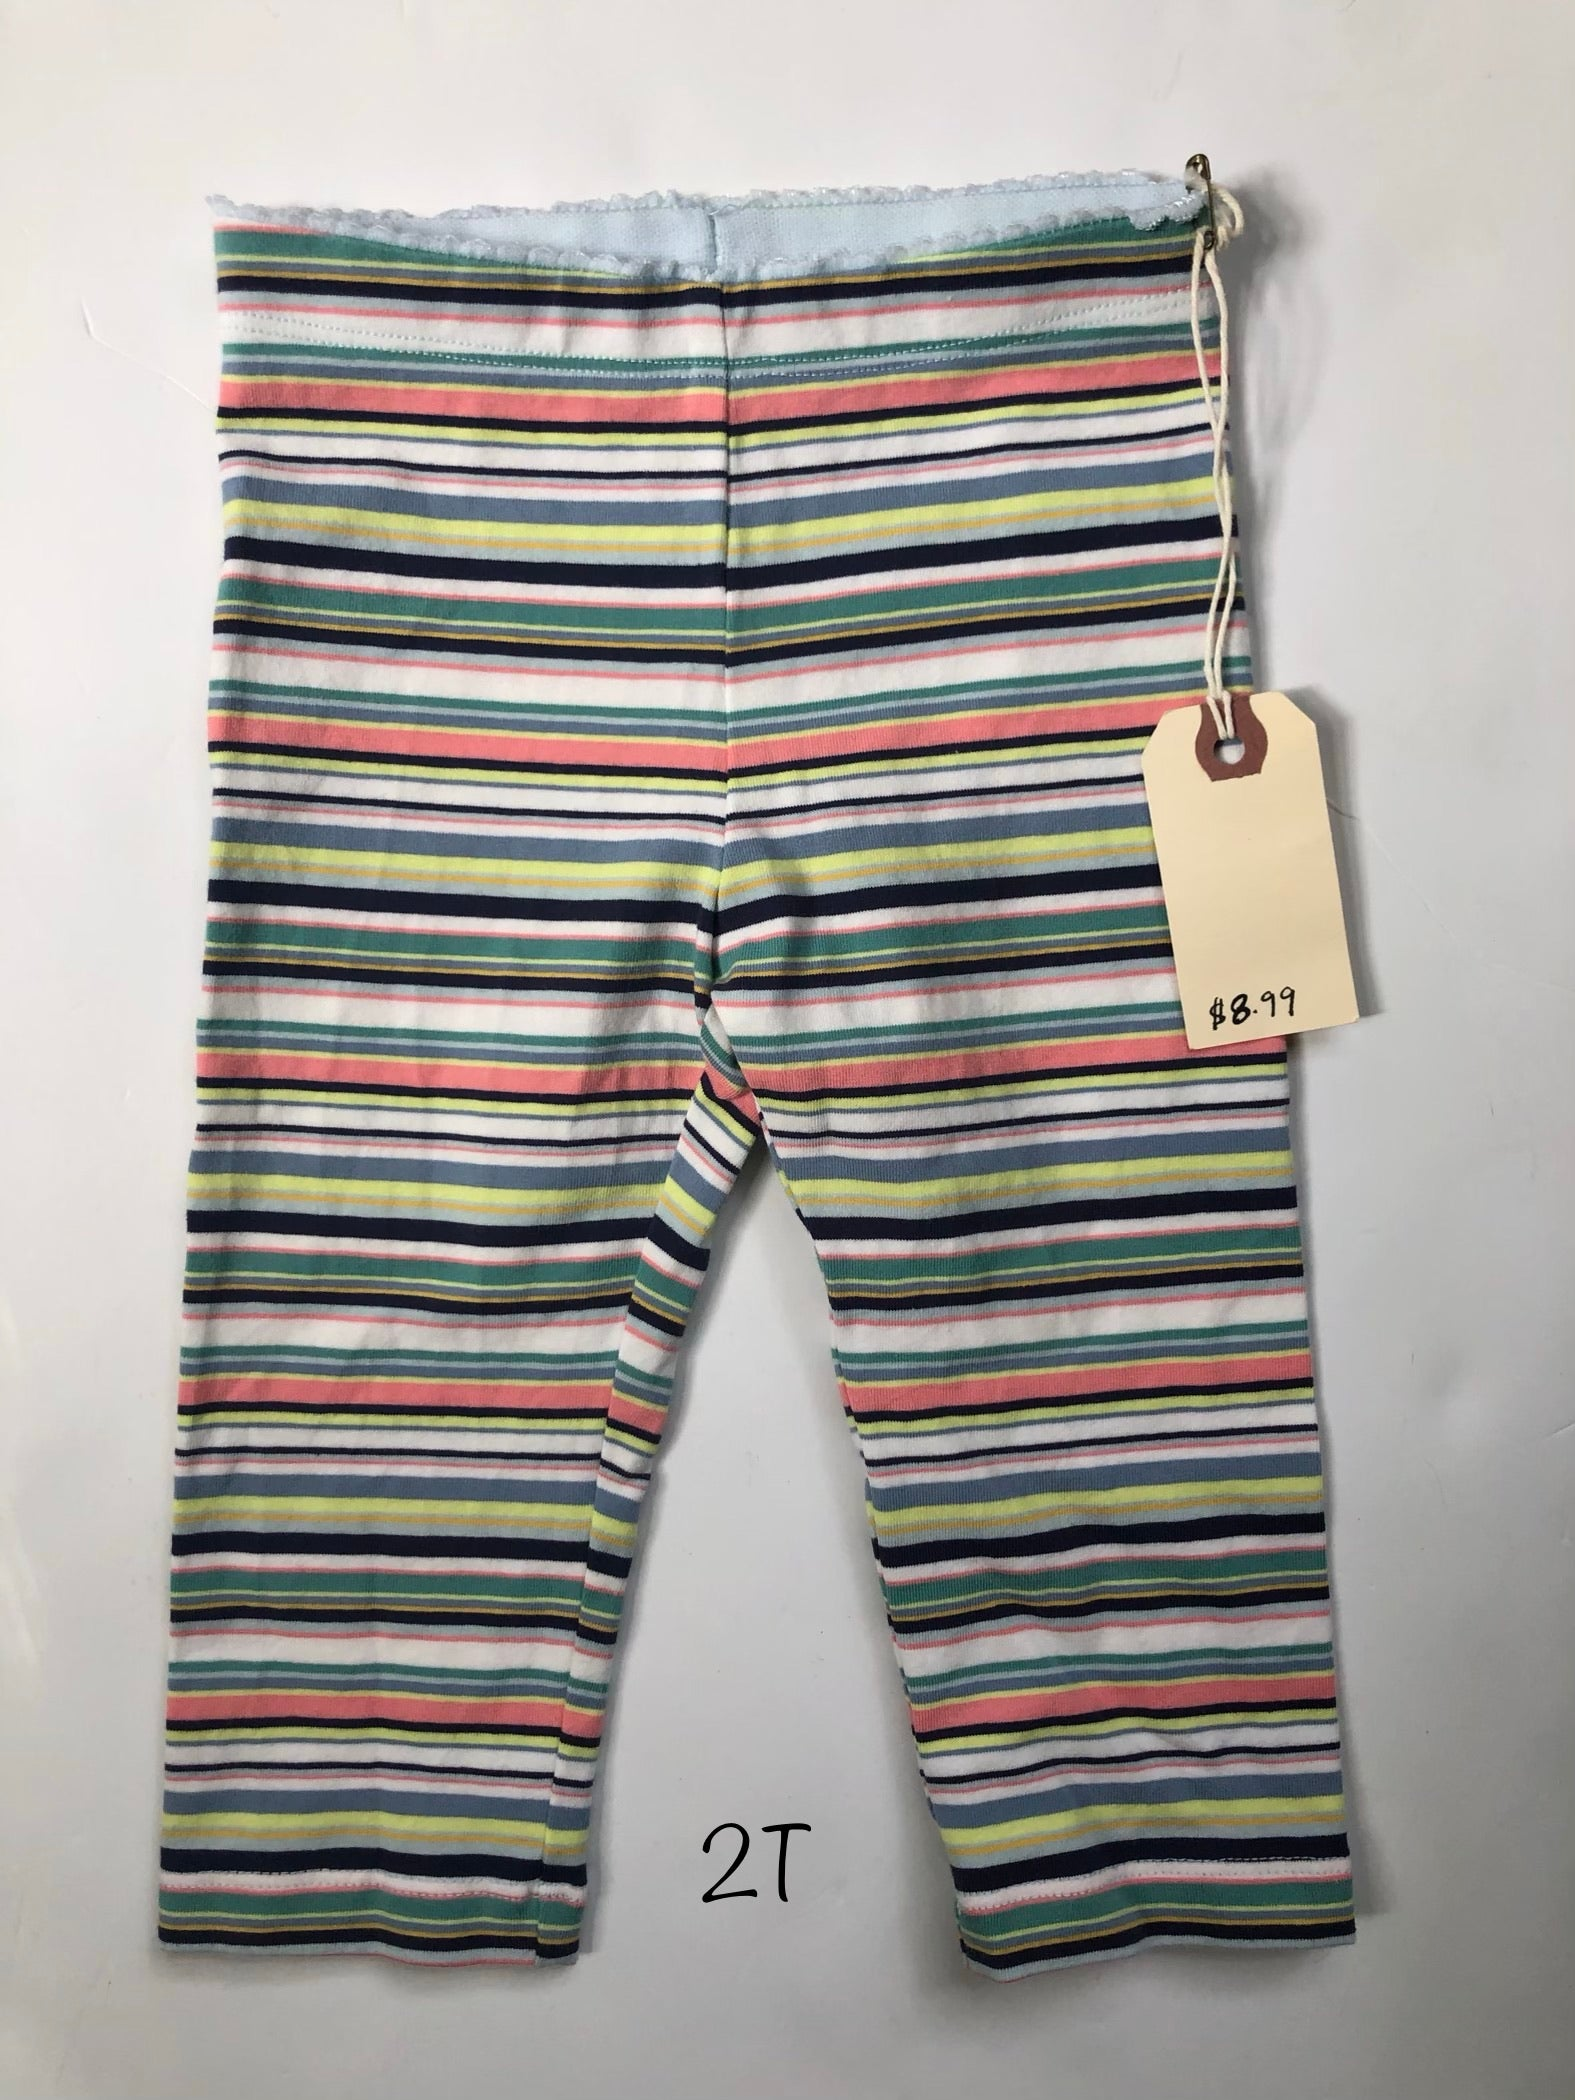 Resale 2T Tea Collection Pastel Stripe Capris